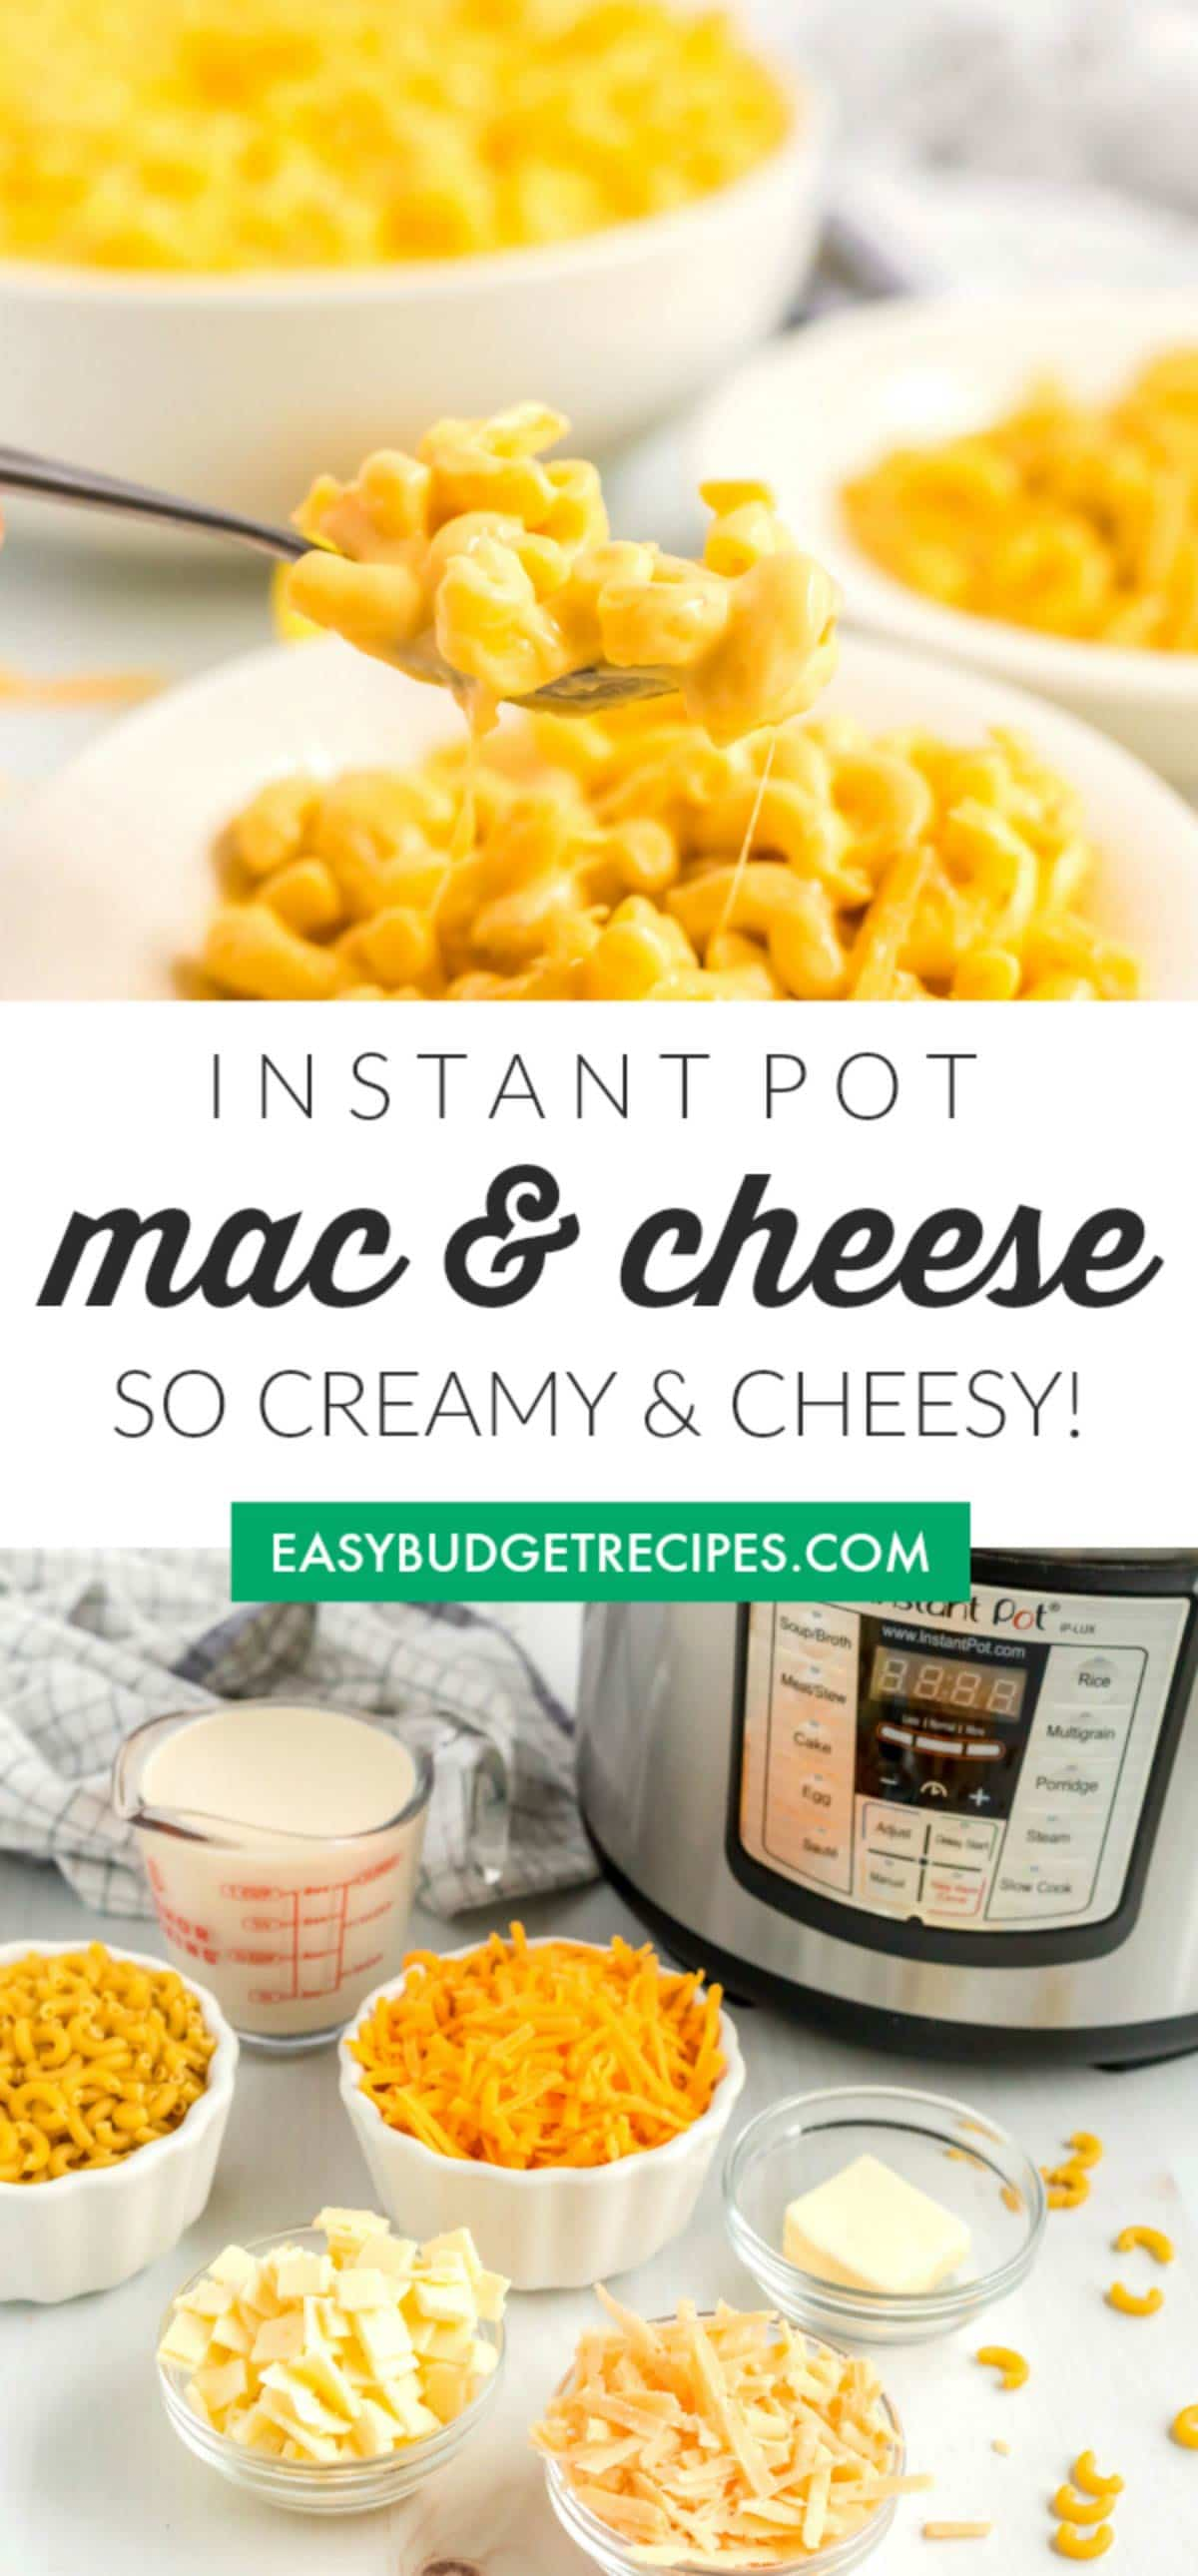 This Instant Pot Mac and Cheese recipe is an easy recipe made with macaroni, butter, evaporated milk, and 3 kinds of cheese. via @easybudgetrecipes